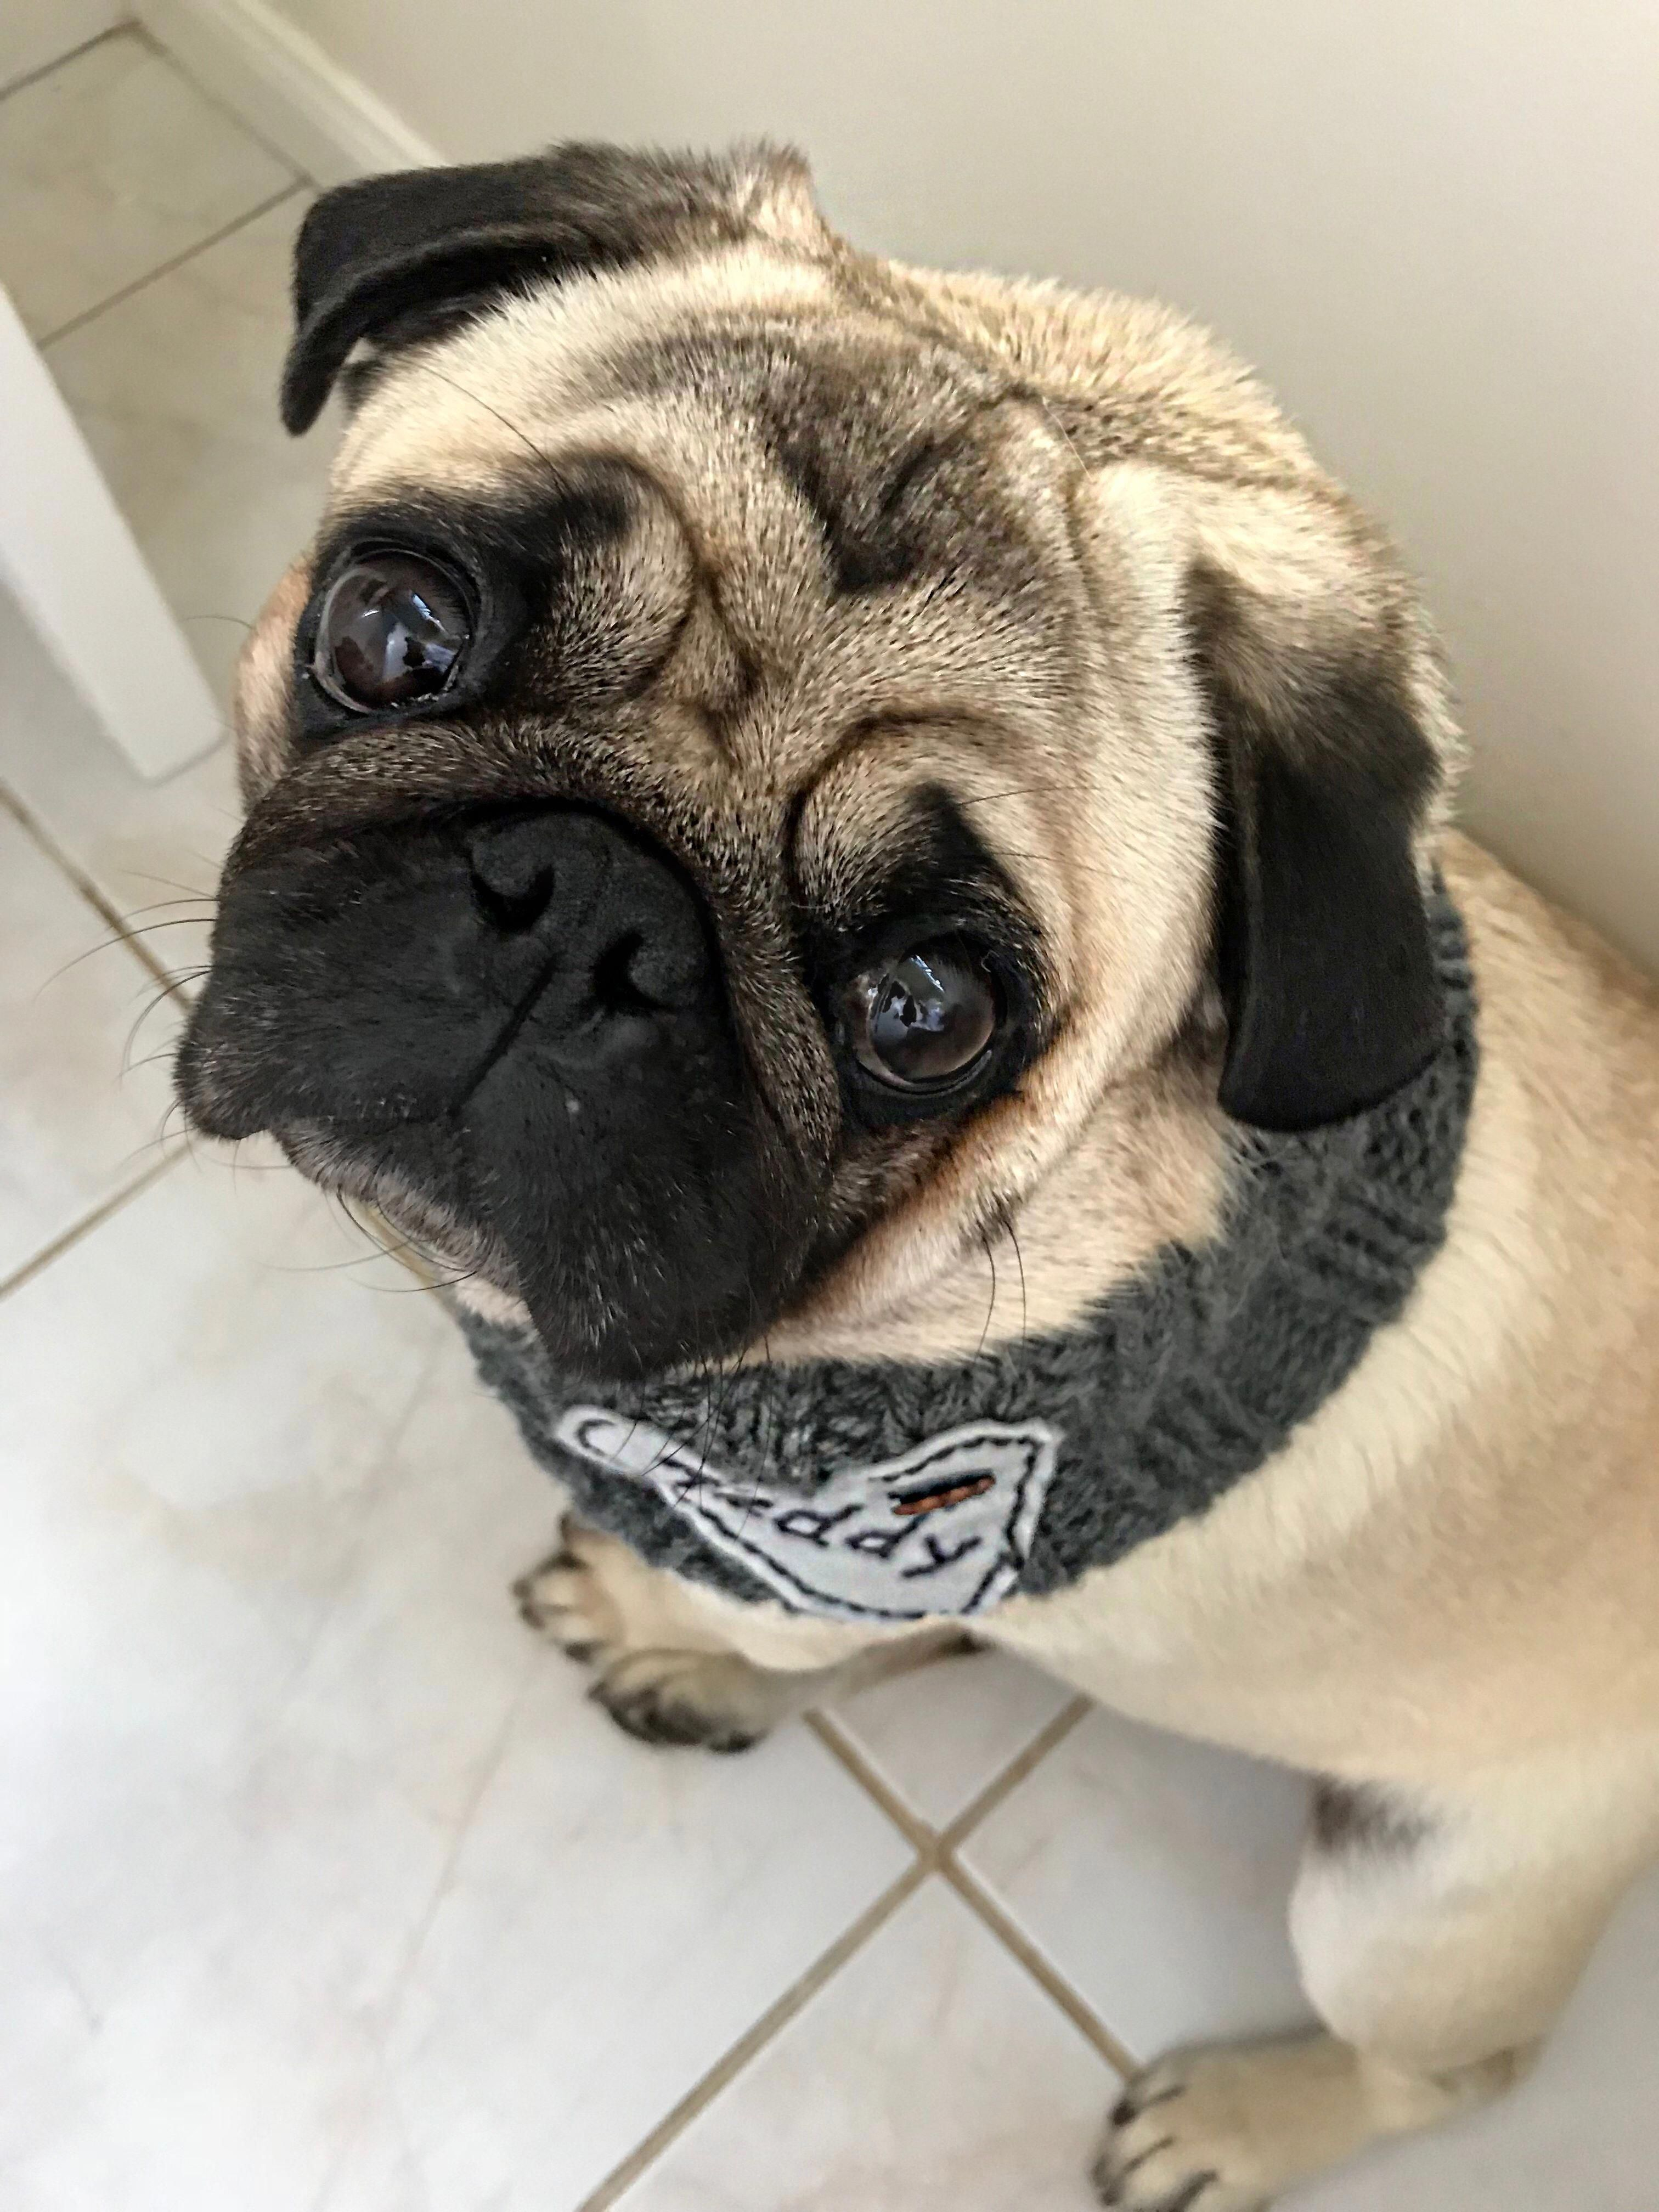 Find Out More Details On Pug Dogs Have A Look At Our Website Pugs